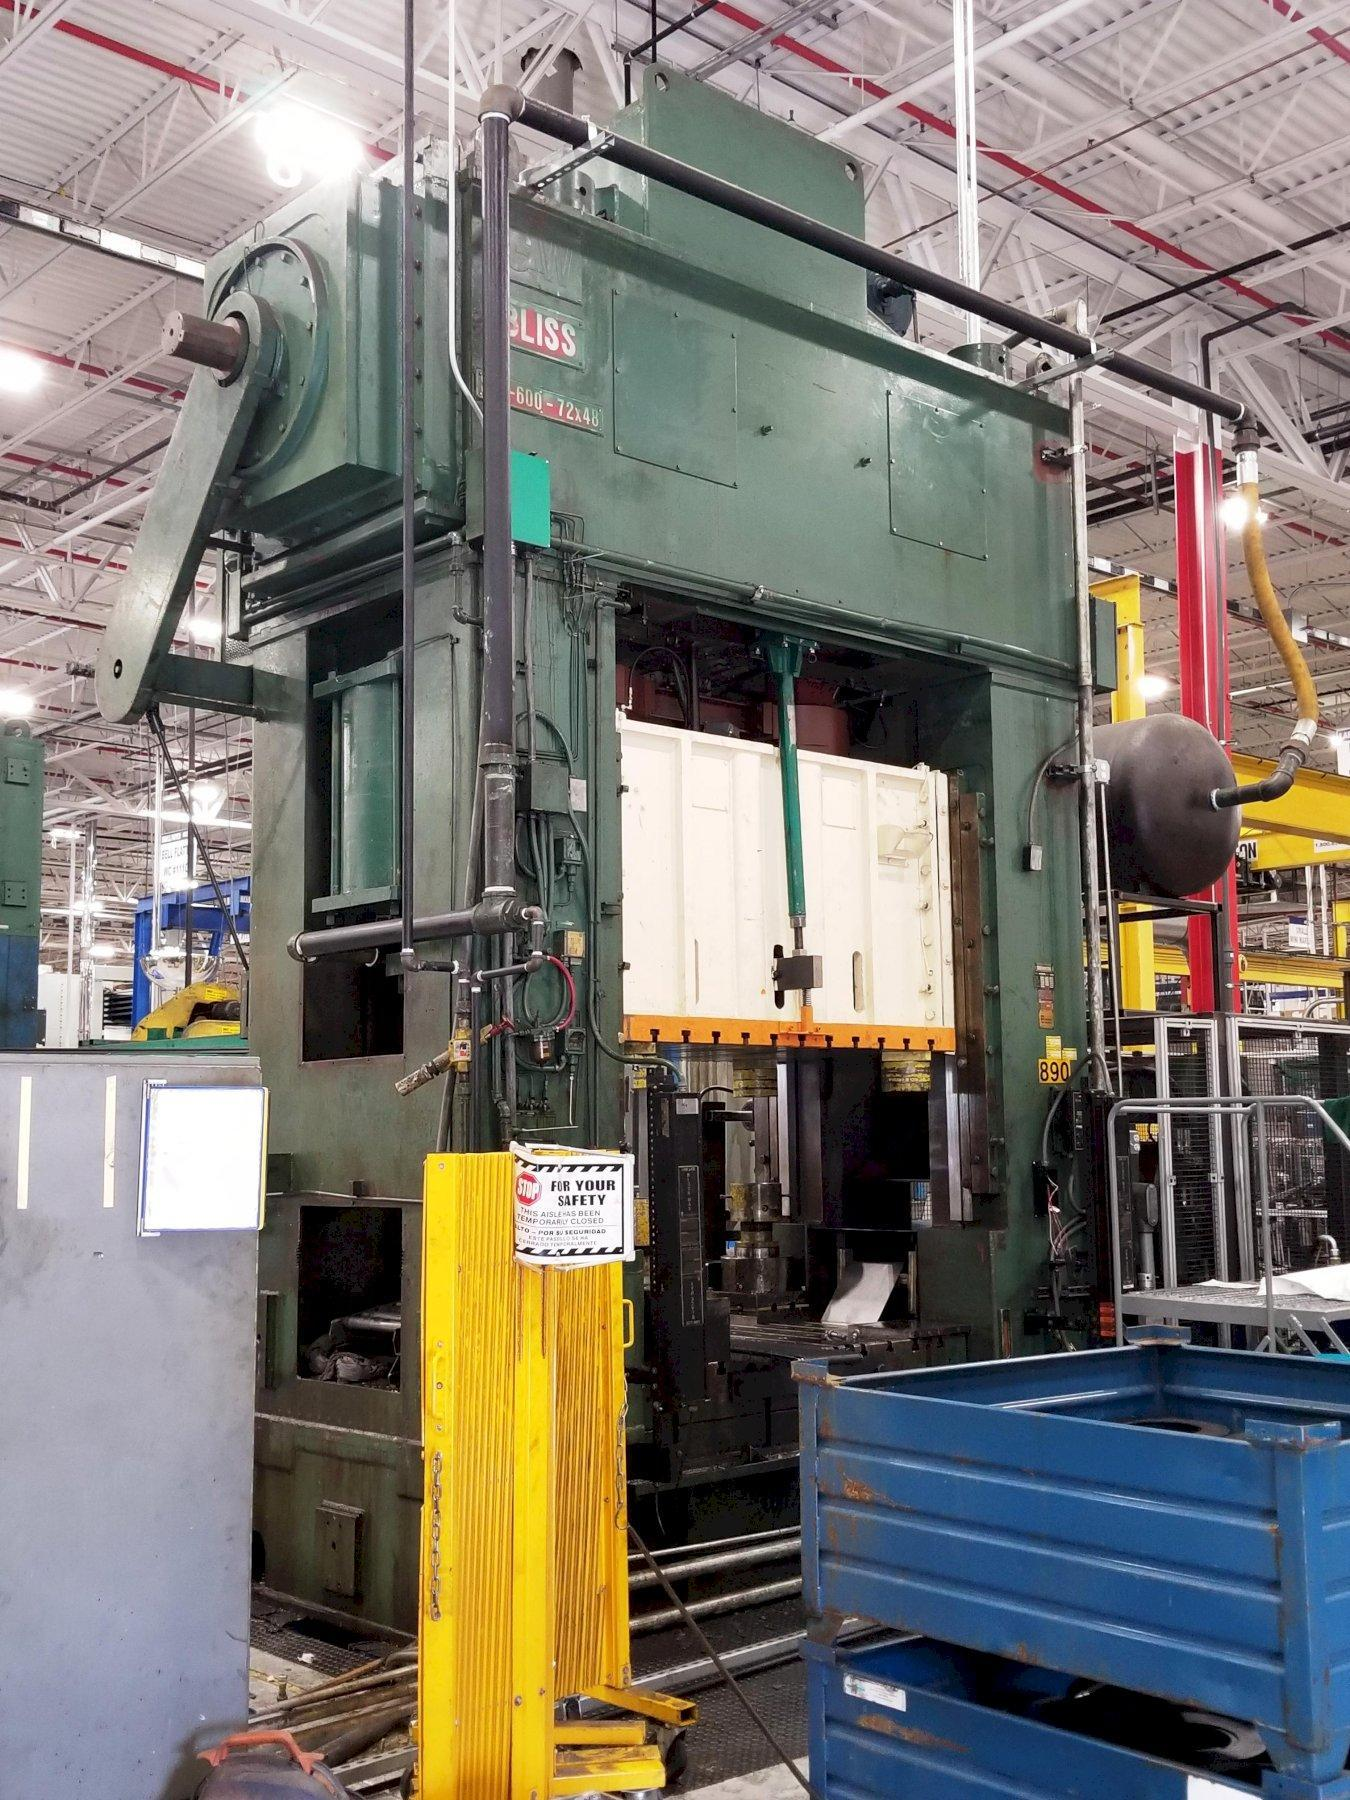 600 TON BLISS SE2-600-72-48 STRAIGHT SIDE PRESS. STOCK # 1057720